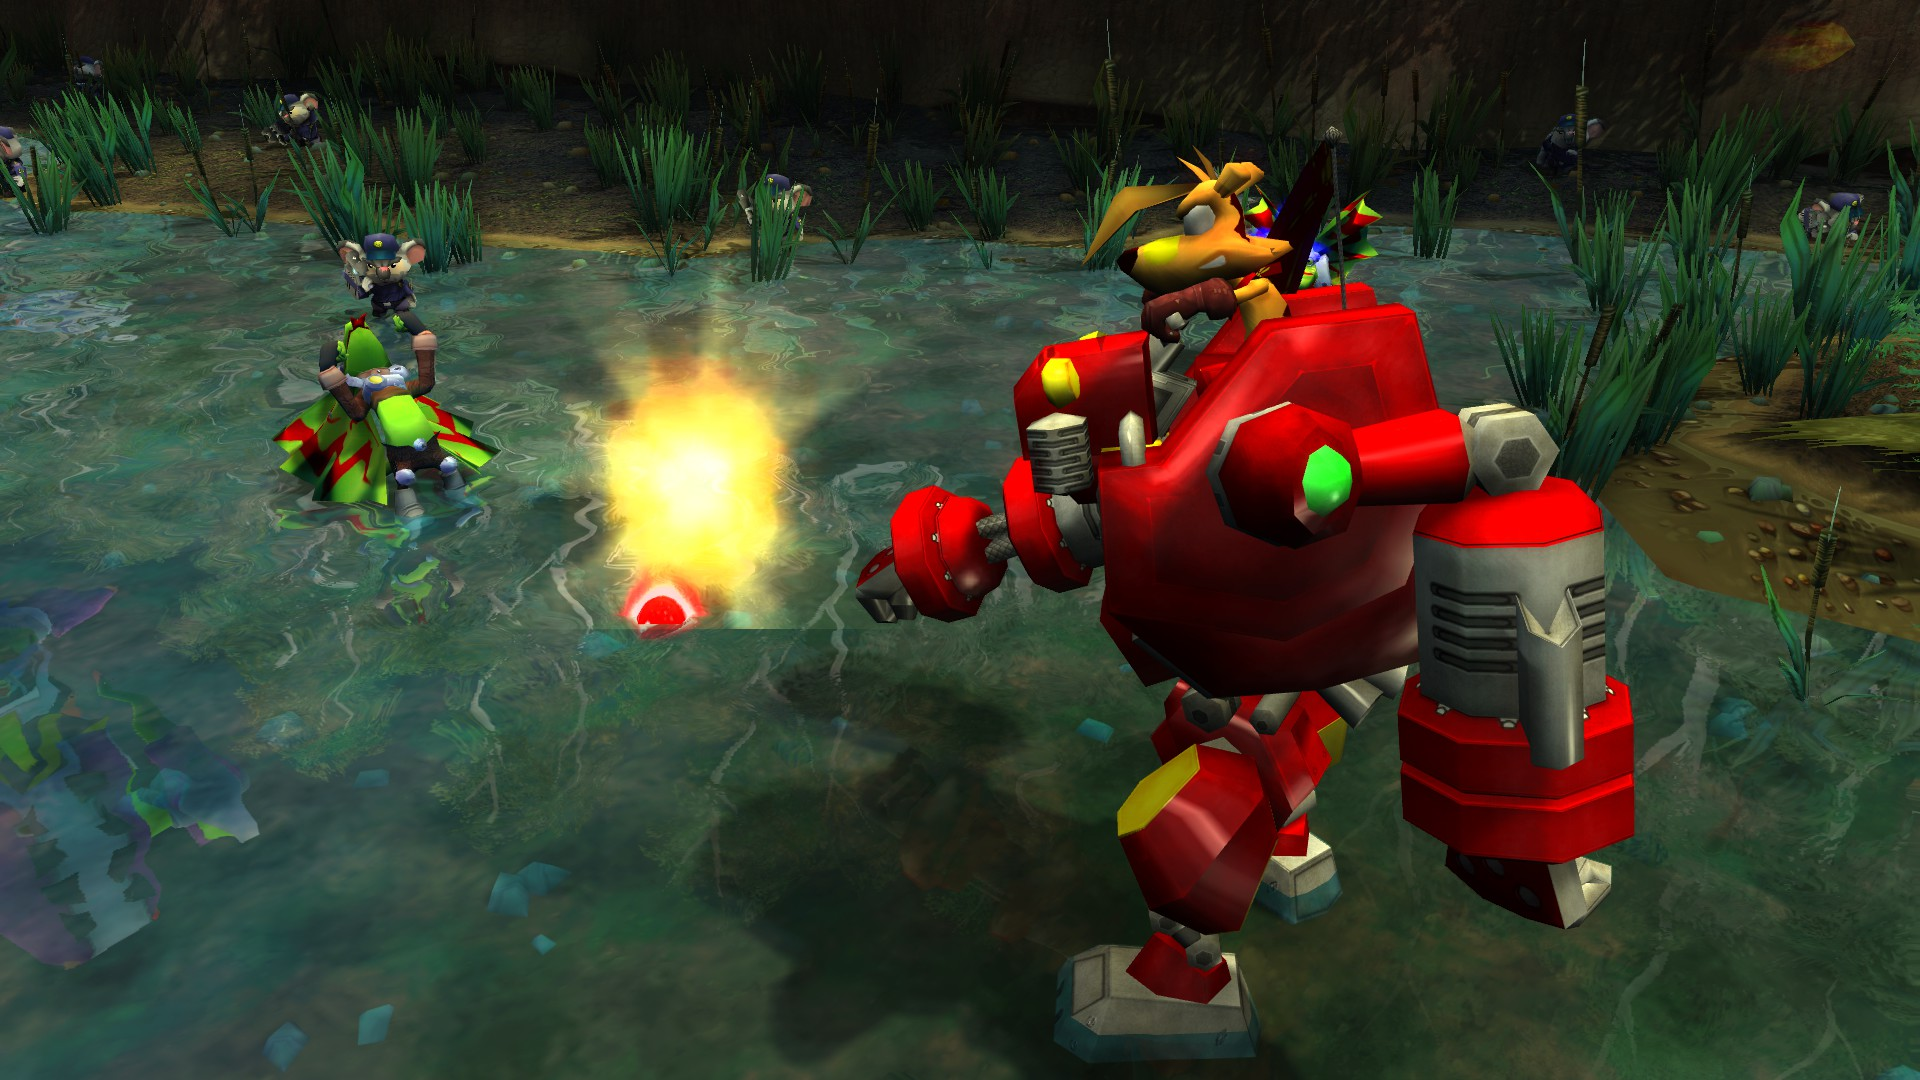 TY the Tasmanian Tiger 2 (Steam Global Account)